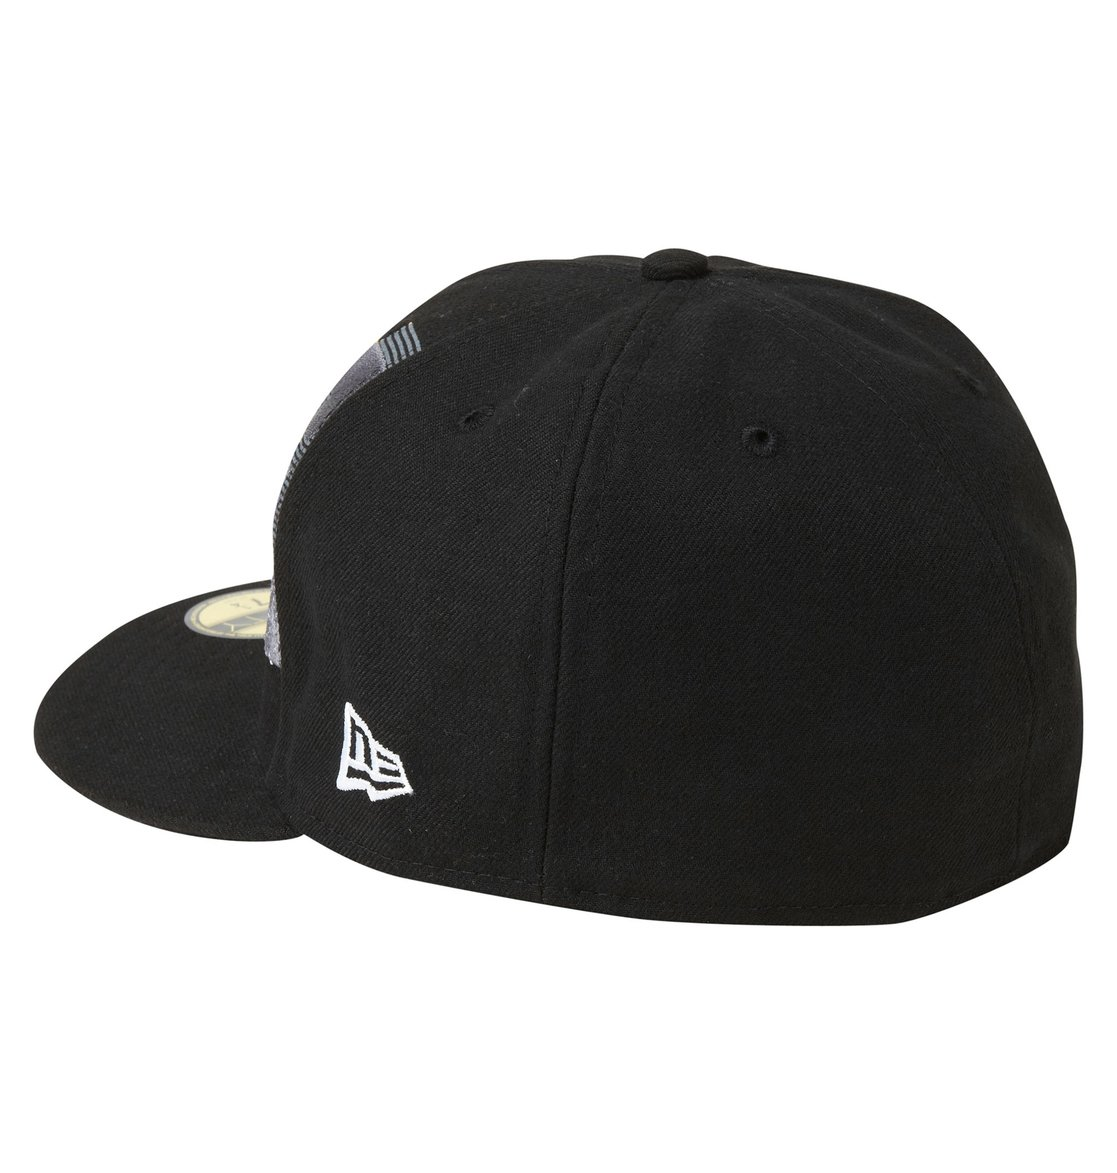 Men's Travis Pastrana Blurr Hat 51300192 | DC Shoes